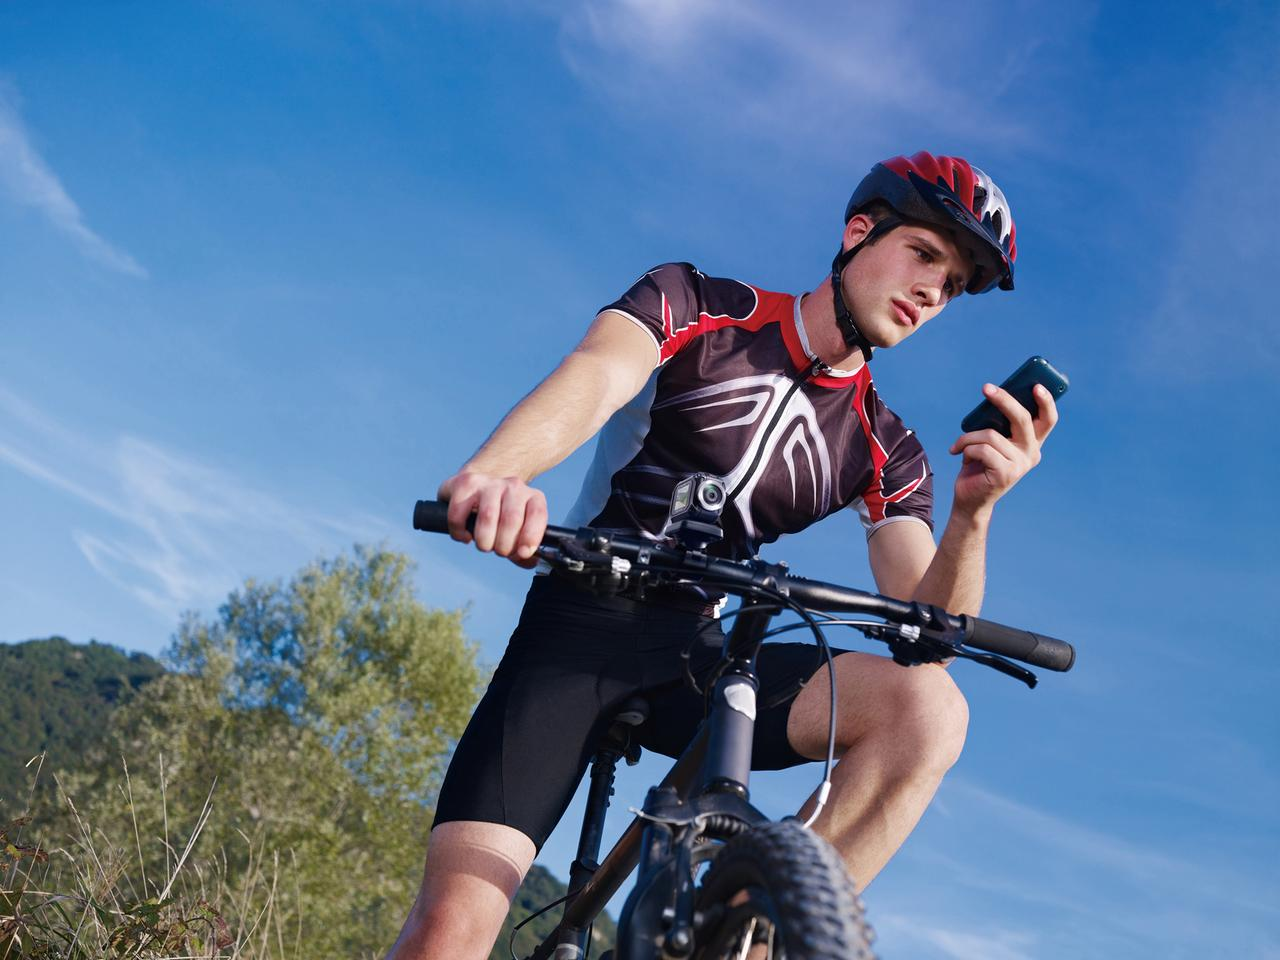 A mountain bike rider checks uses his mobile phone to monitor the video recorded by the action cam